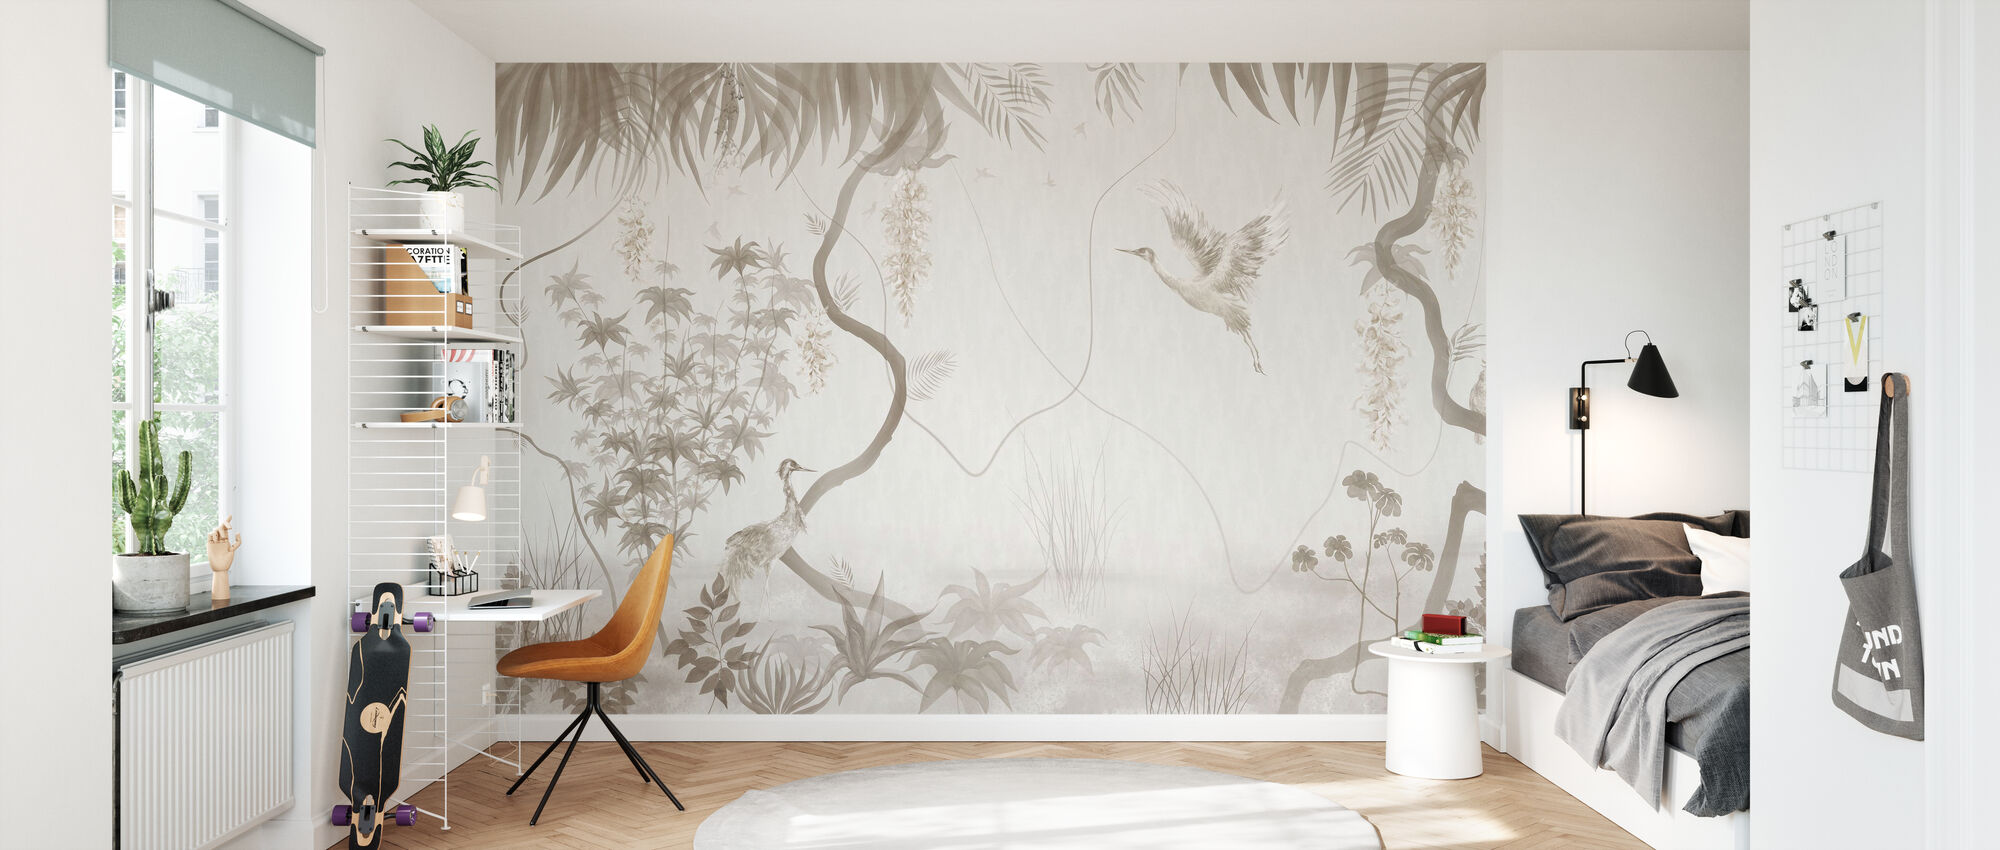 Tranquil Scenery - Sepia - Wallpaper - Kids Room